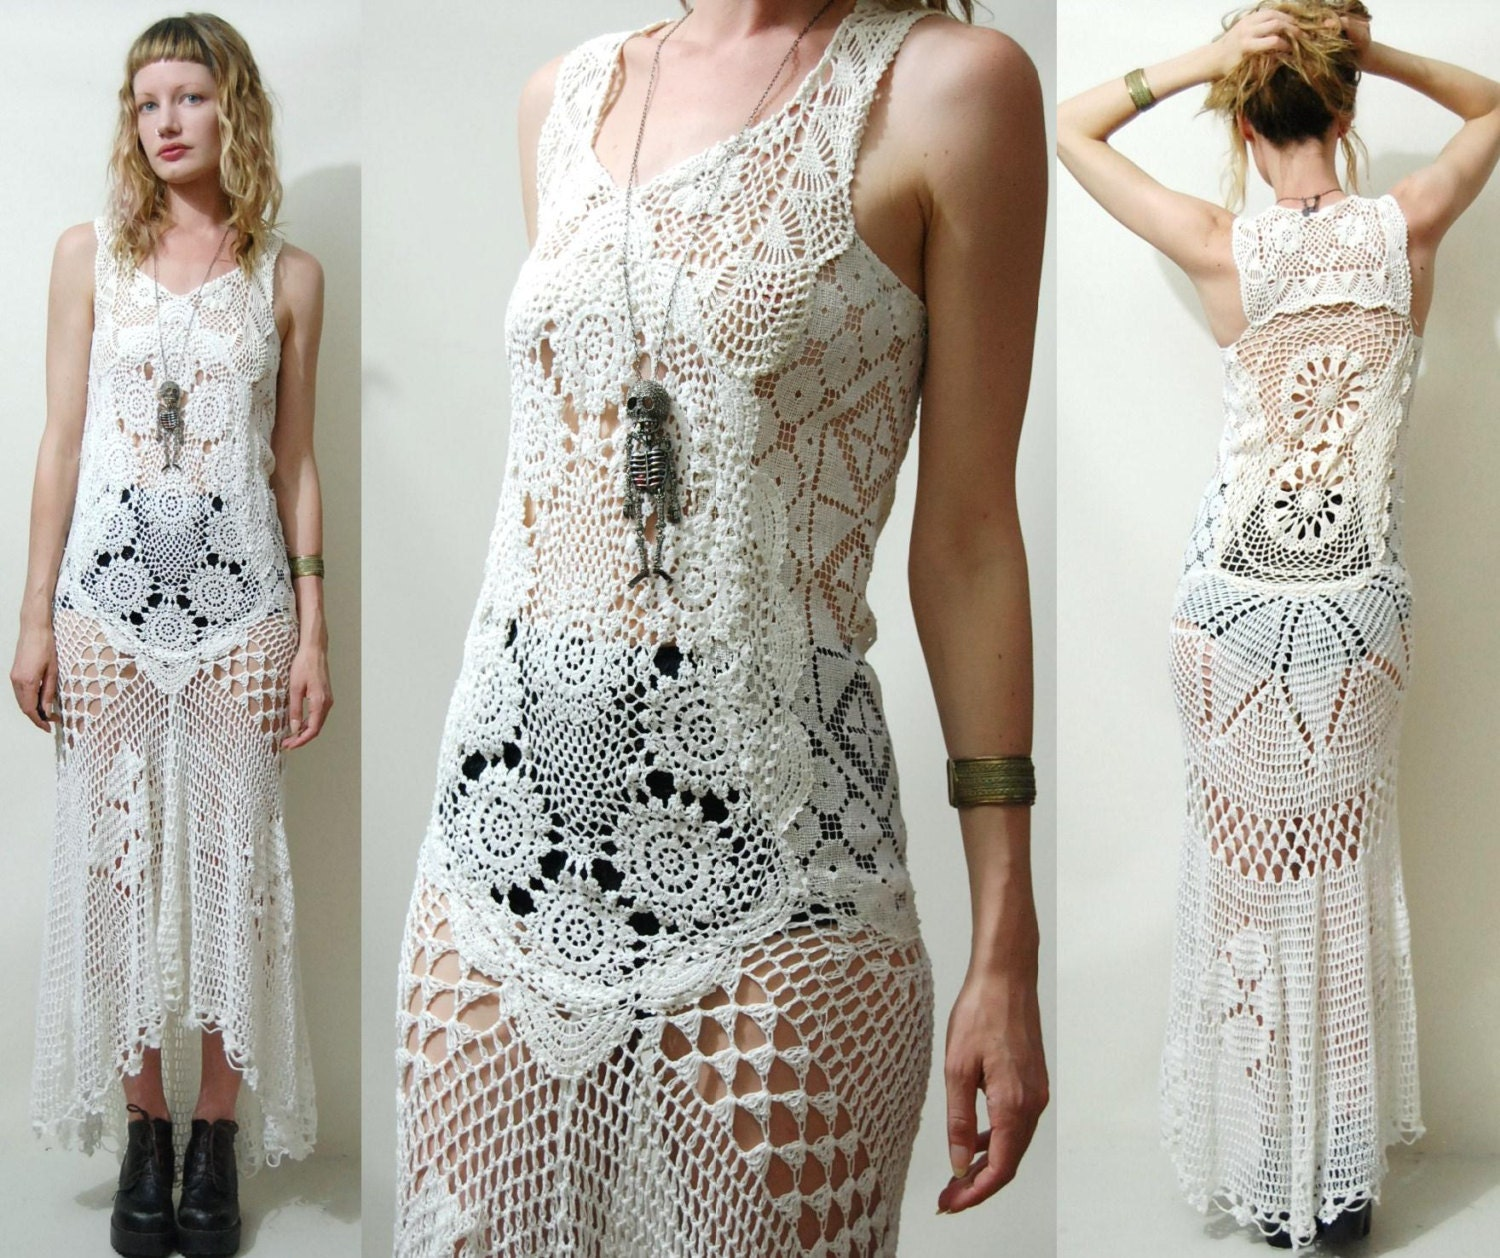 Crochet Clothing : Crochet Dress VINTAGE Full LACE White by cruxandcrow on Etsy